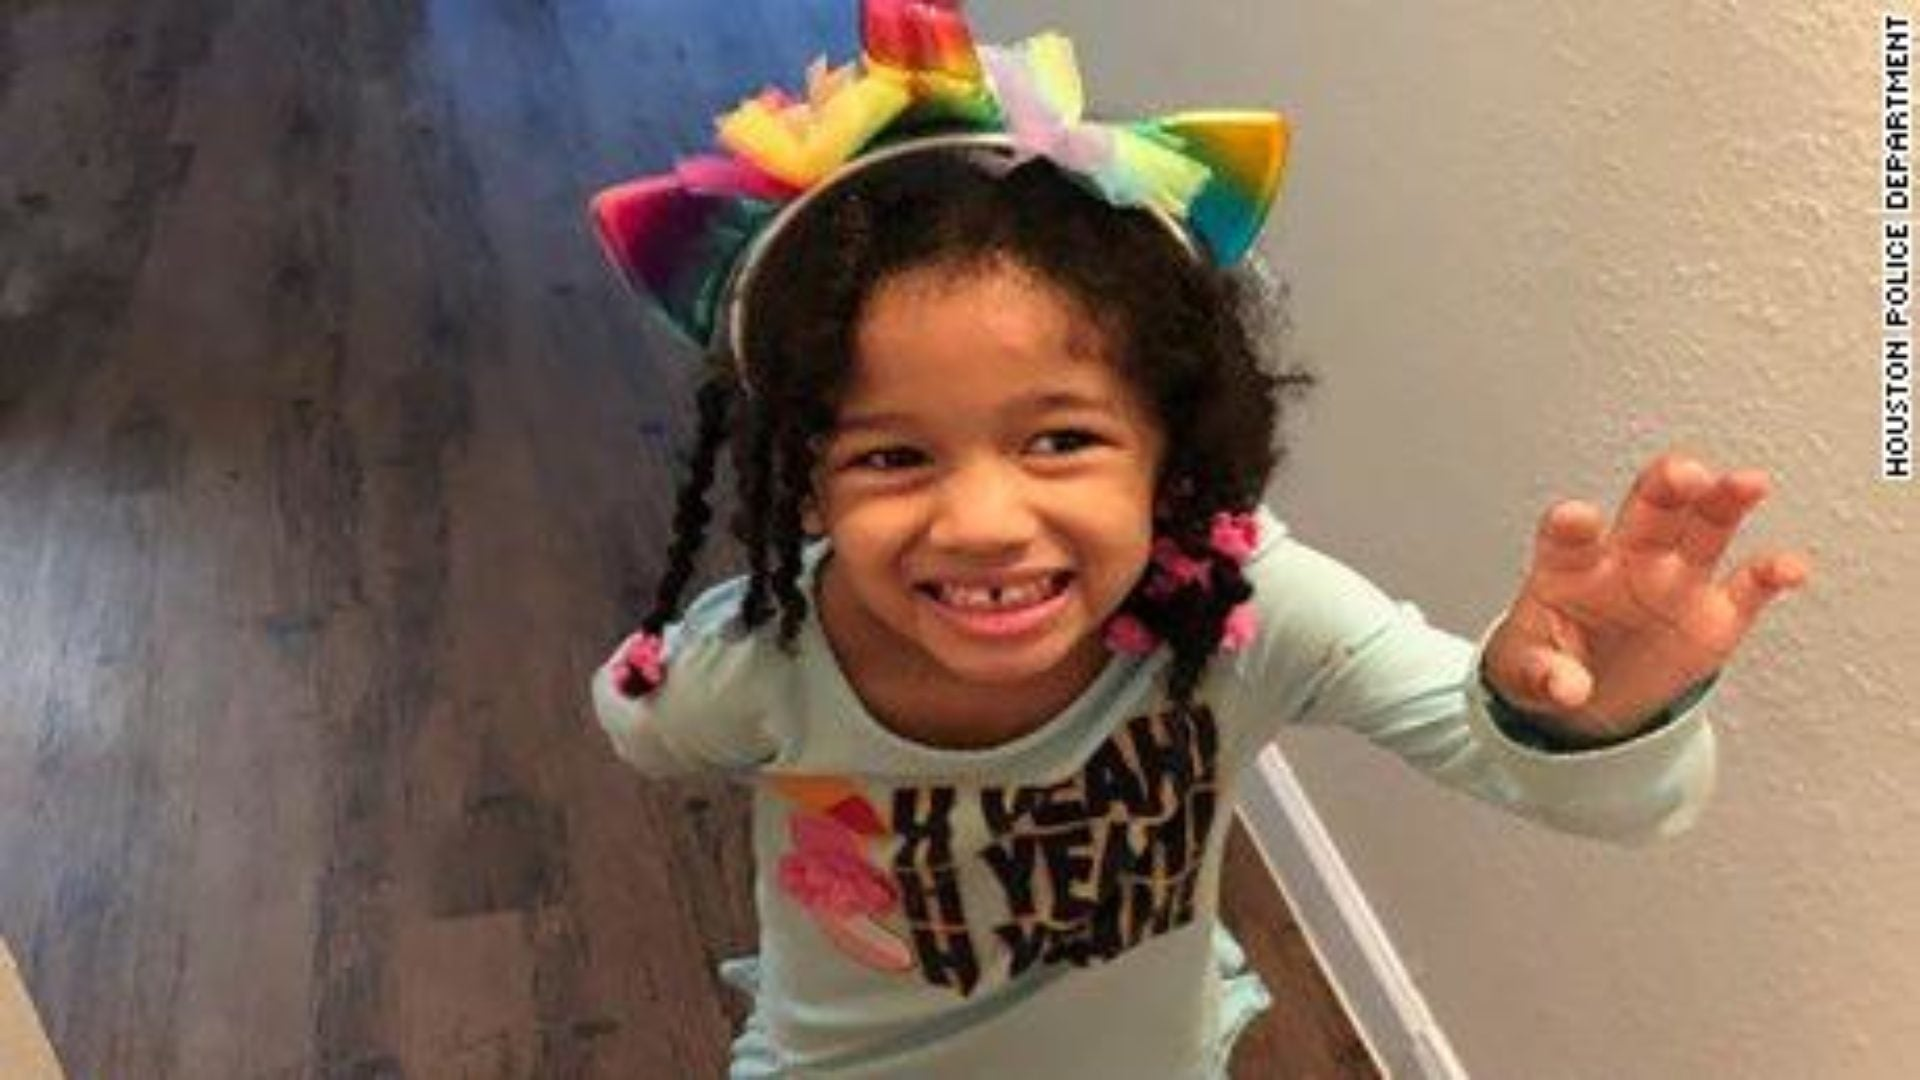 Report: Activist Alleges Maleah Davis' Stepfather Confessed To Killing Her